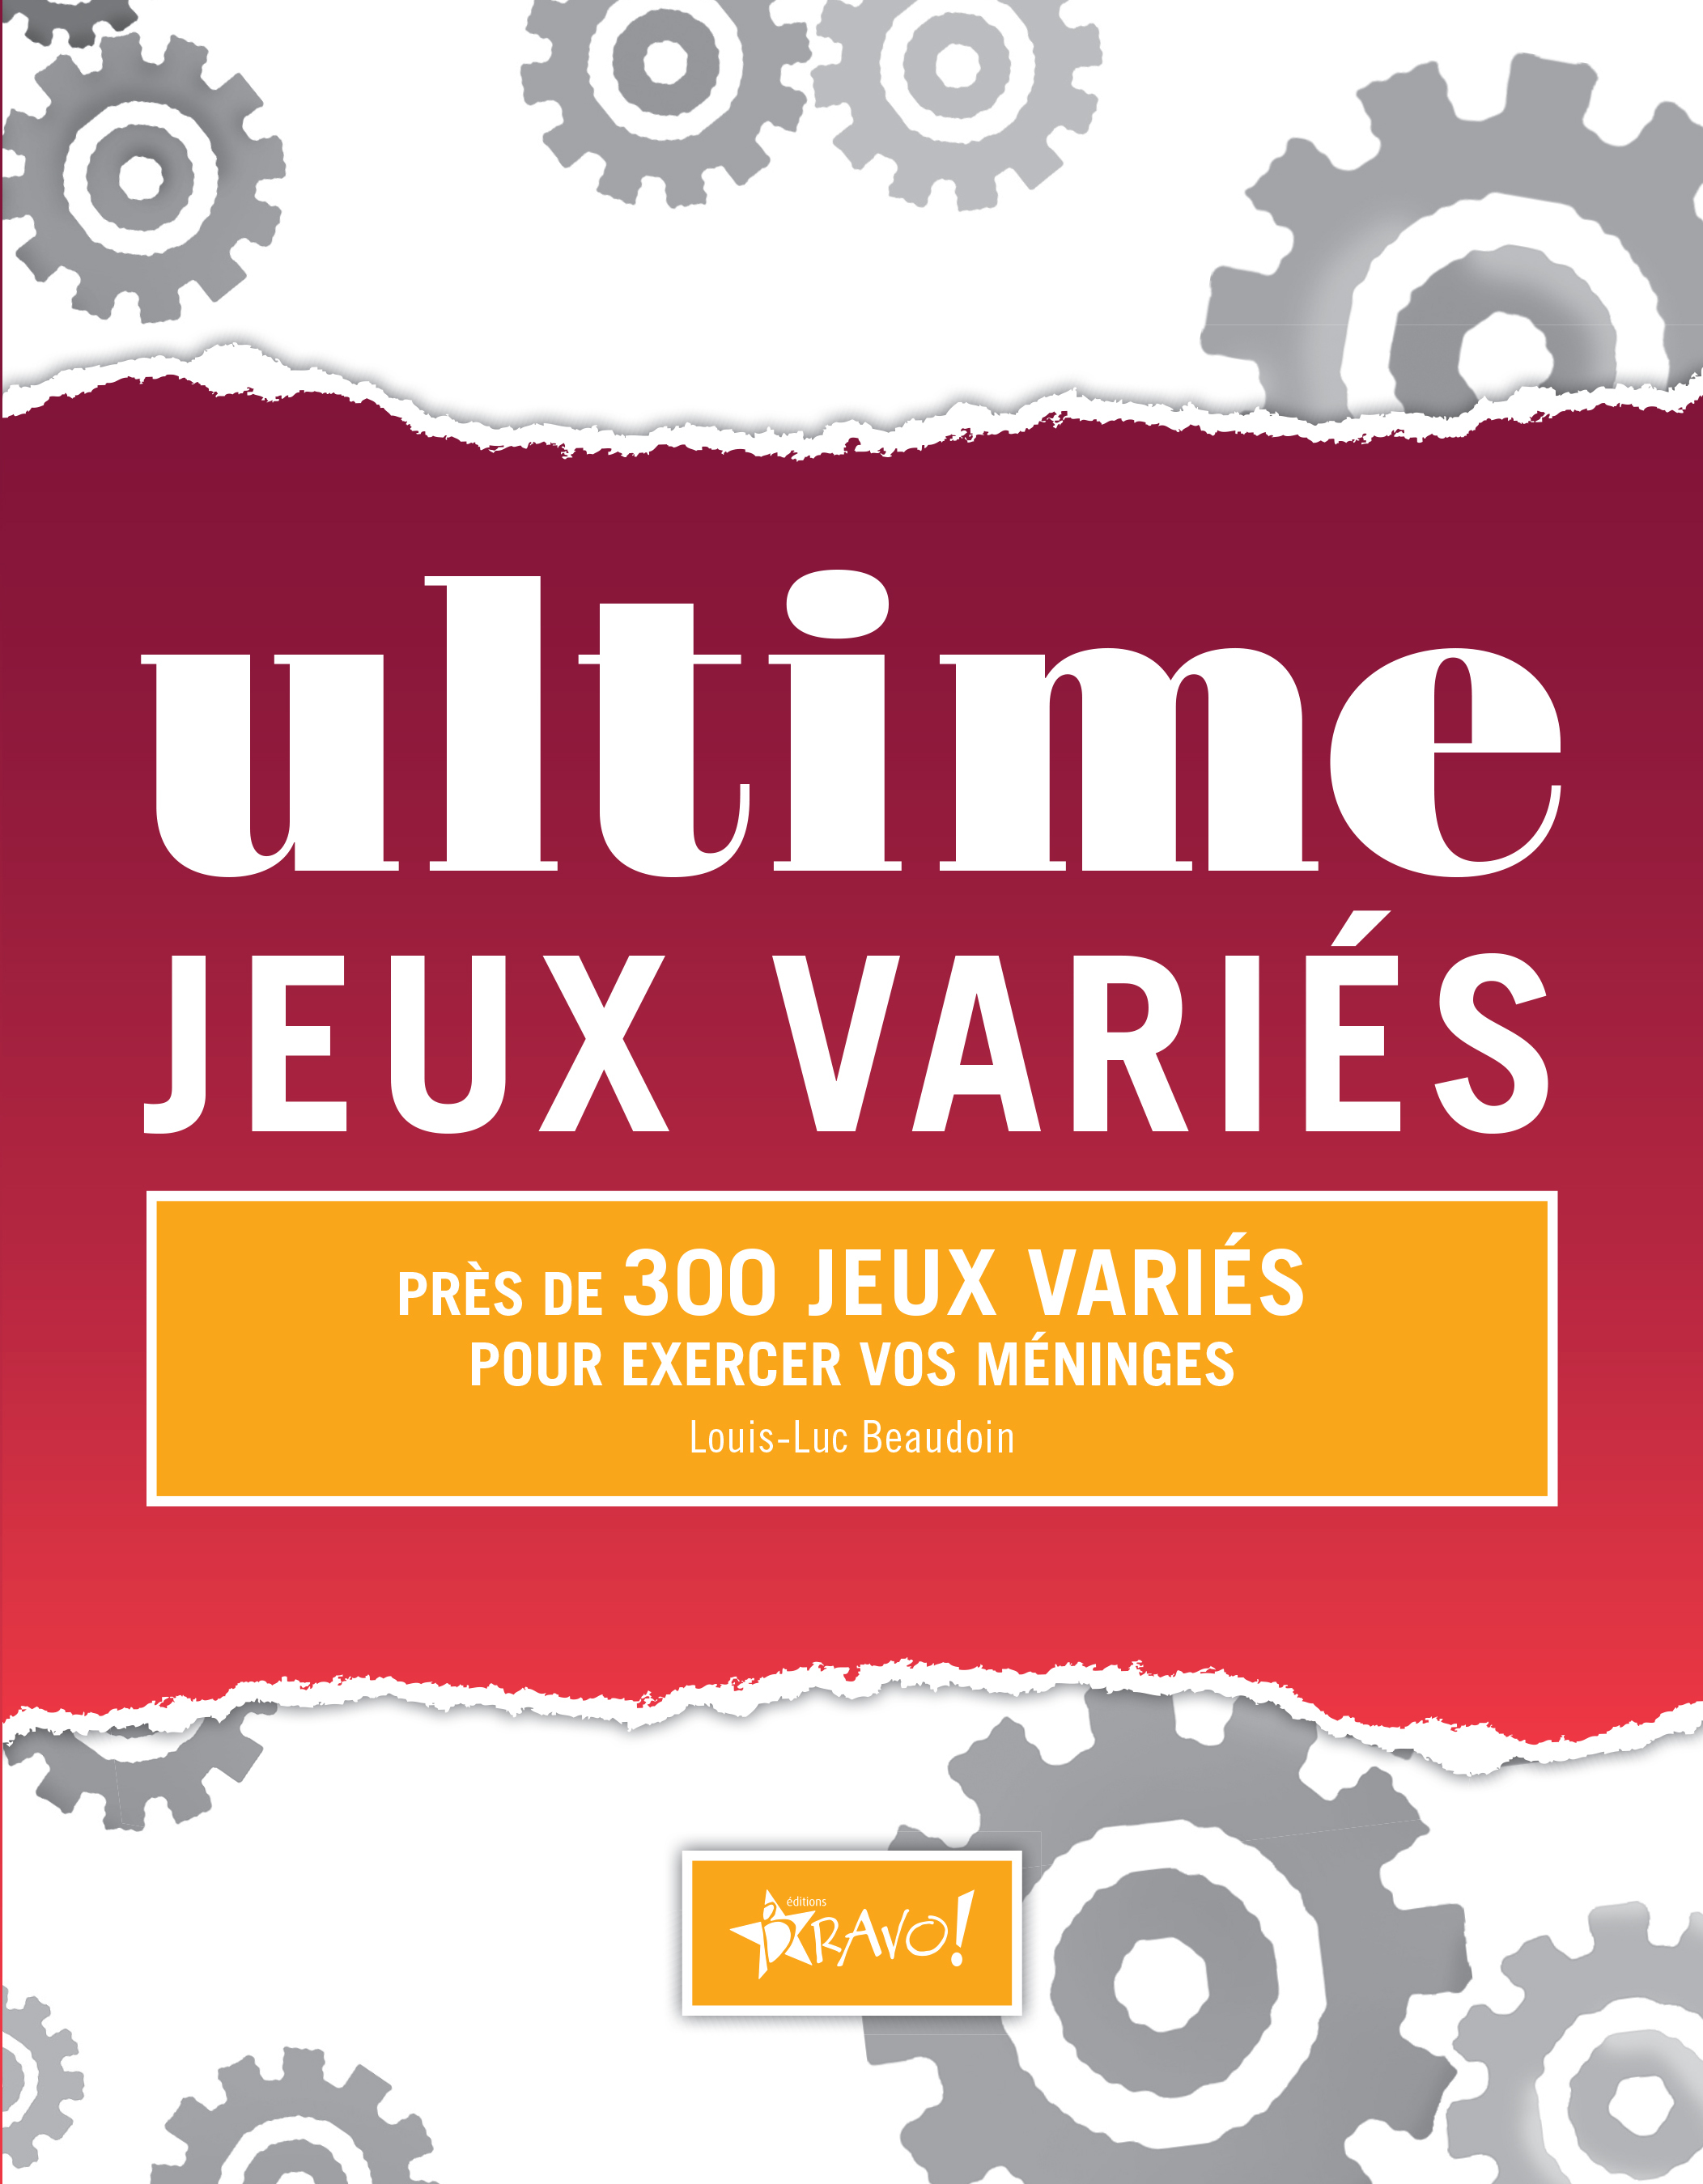 ULTIME JEUX VARIES